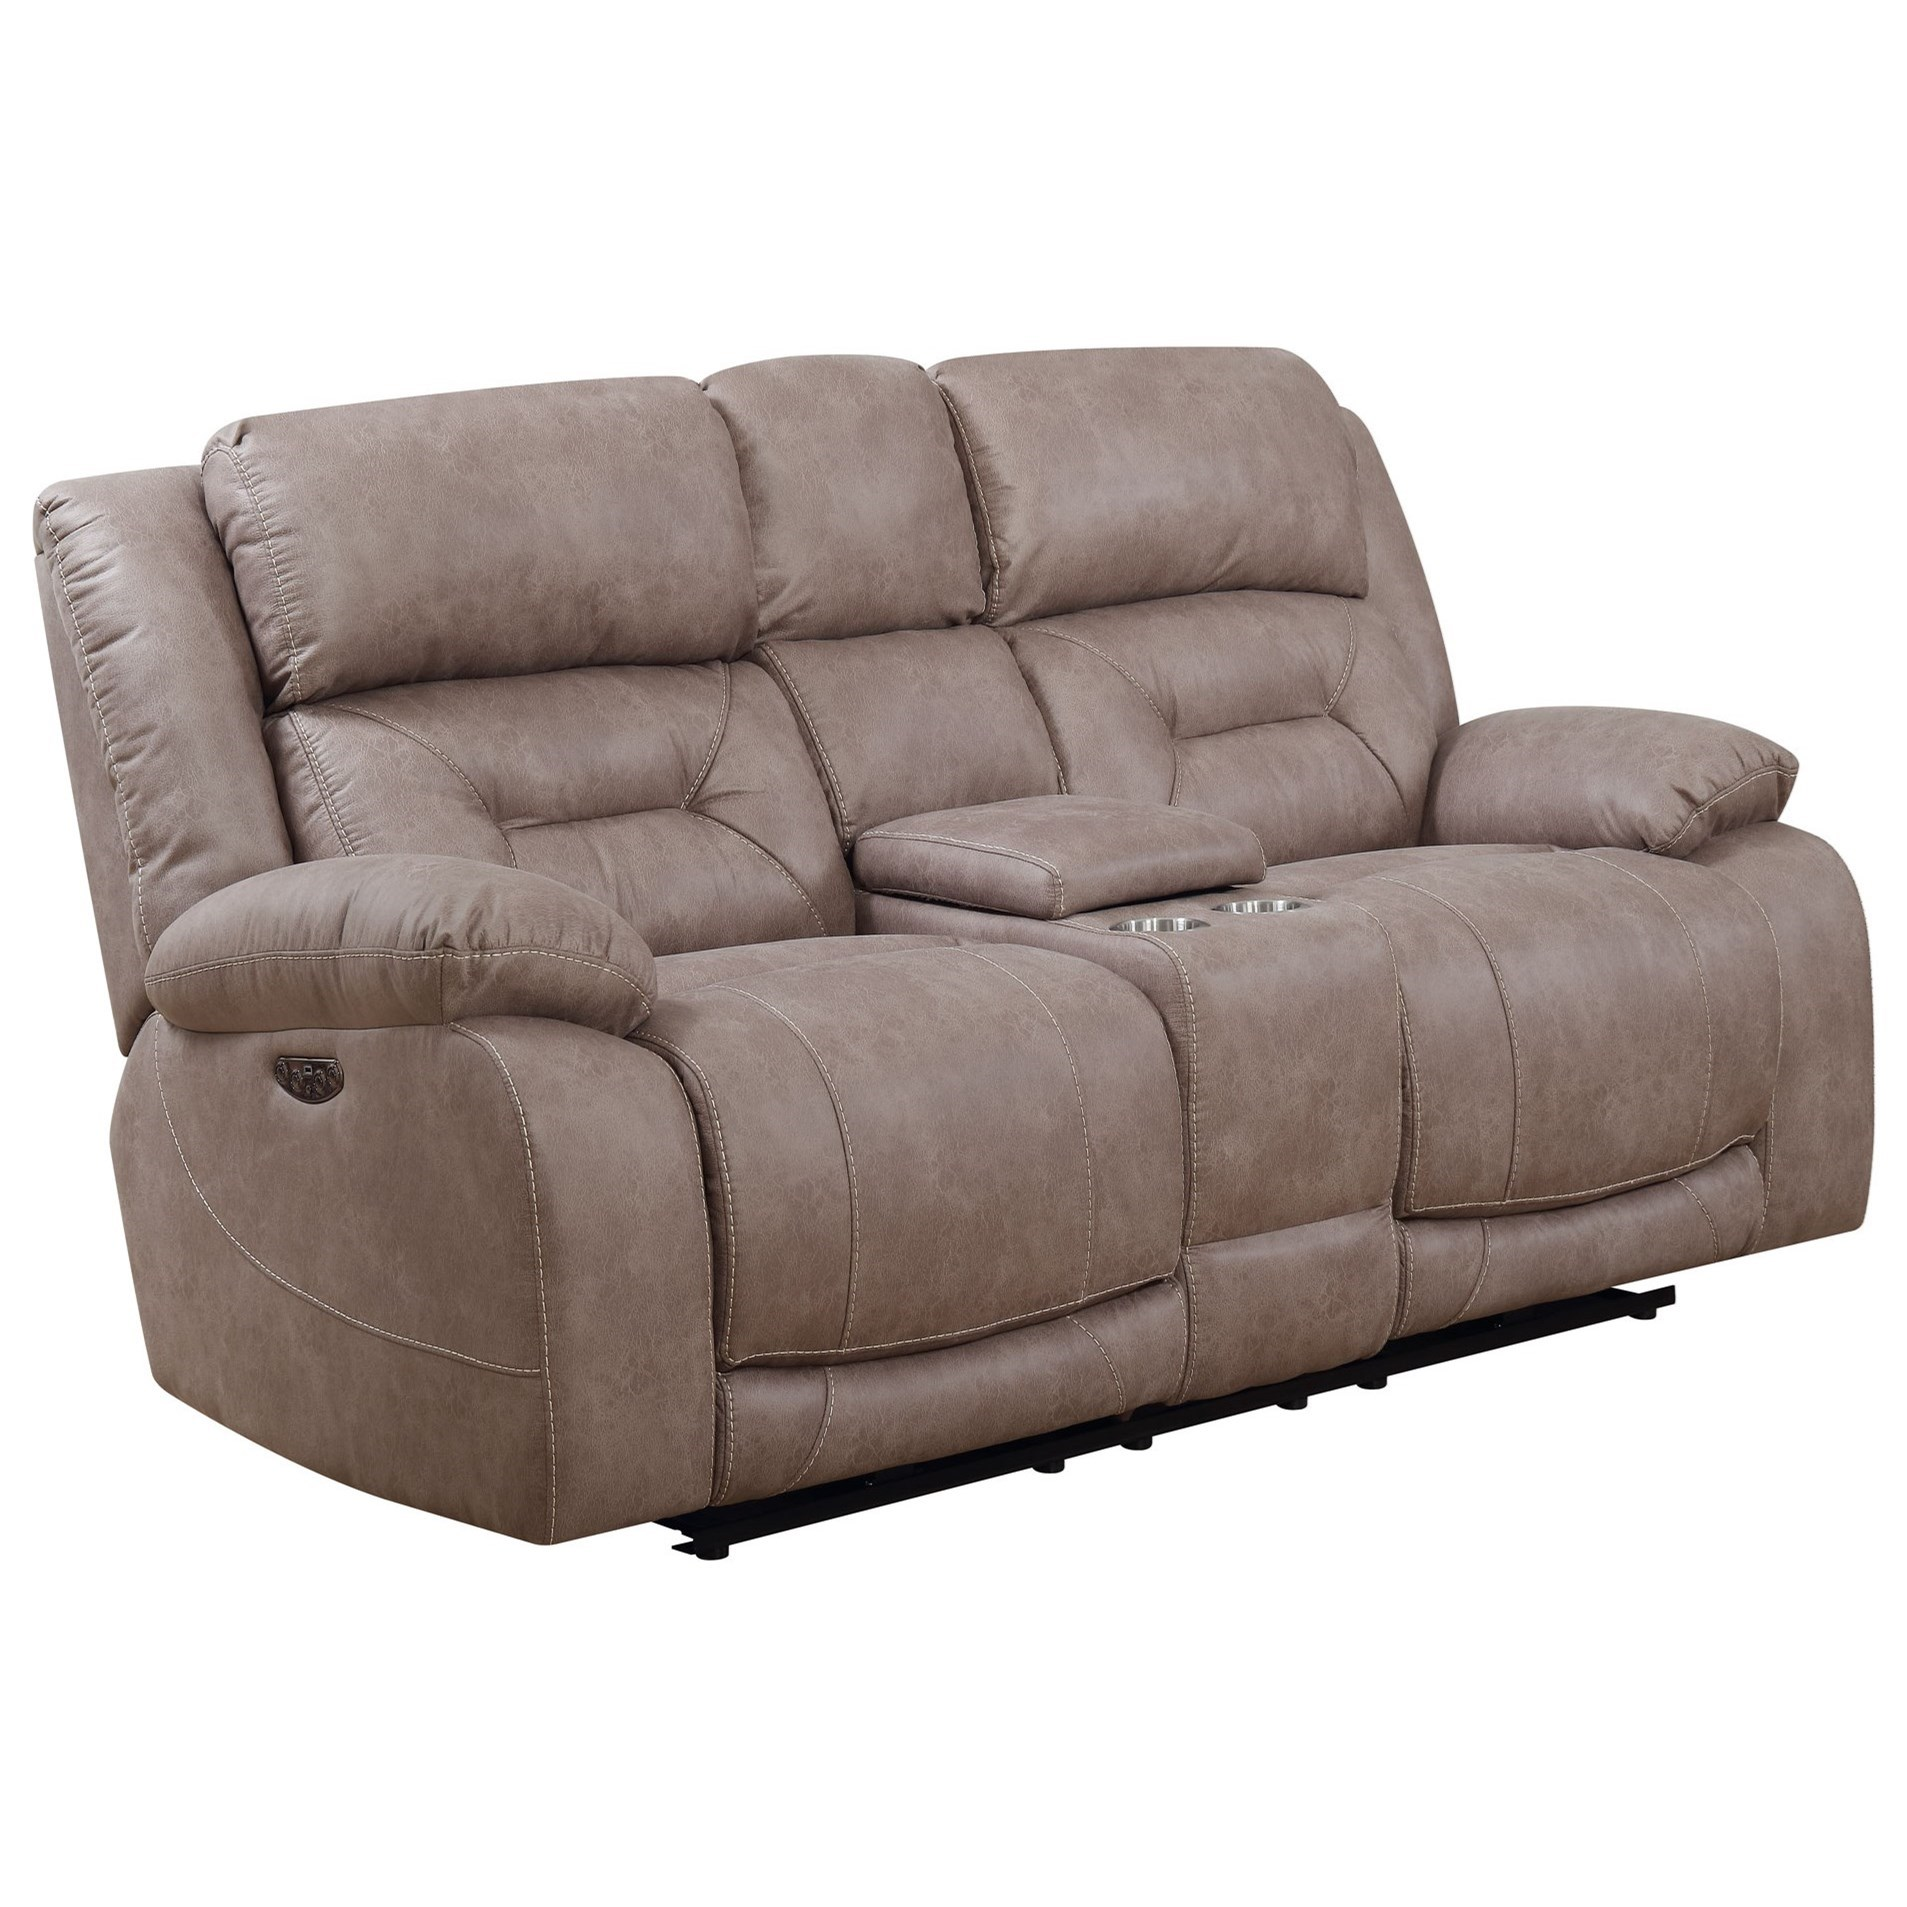 Aria Power Reclining Loveseat by Star at EFO Furniture Outlet